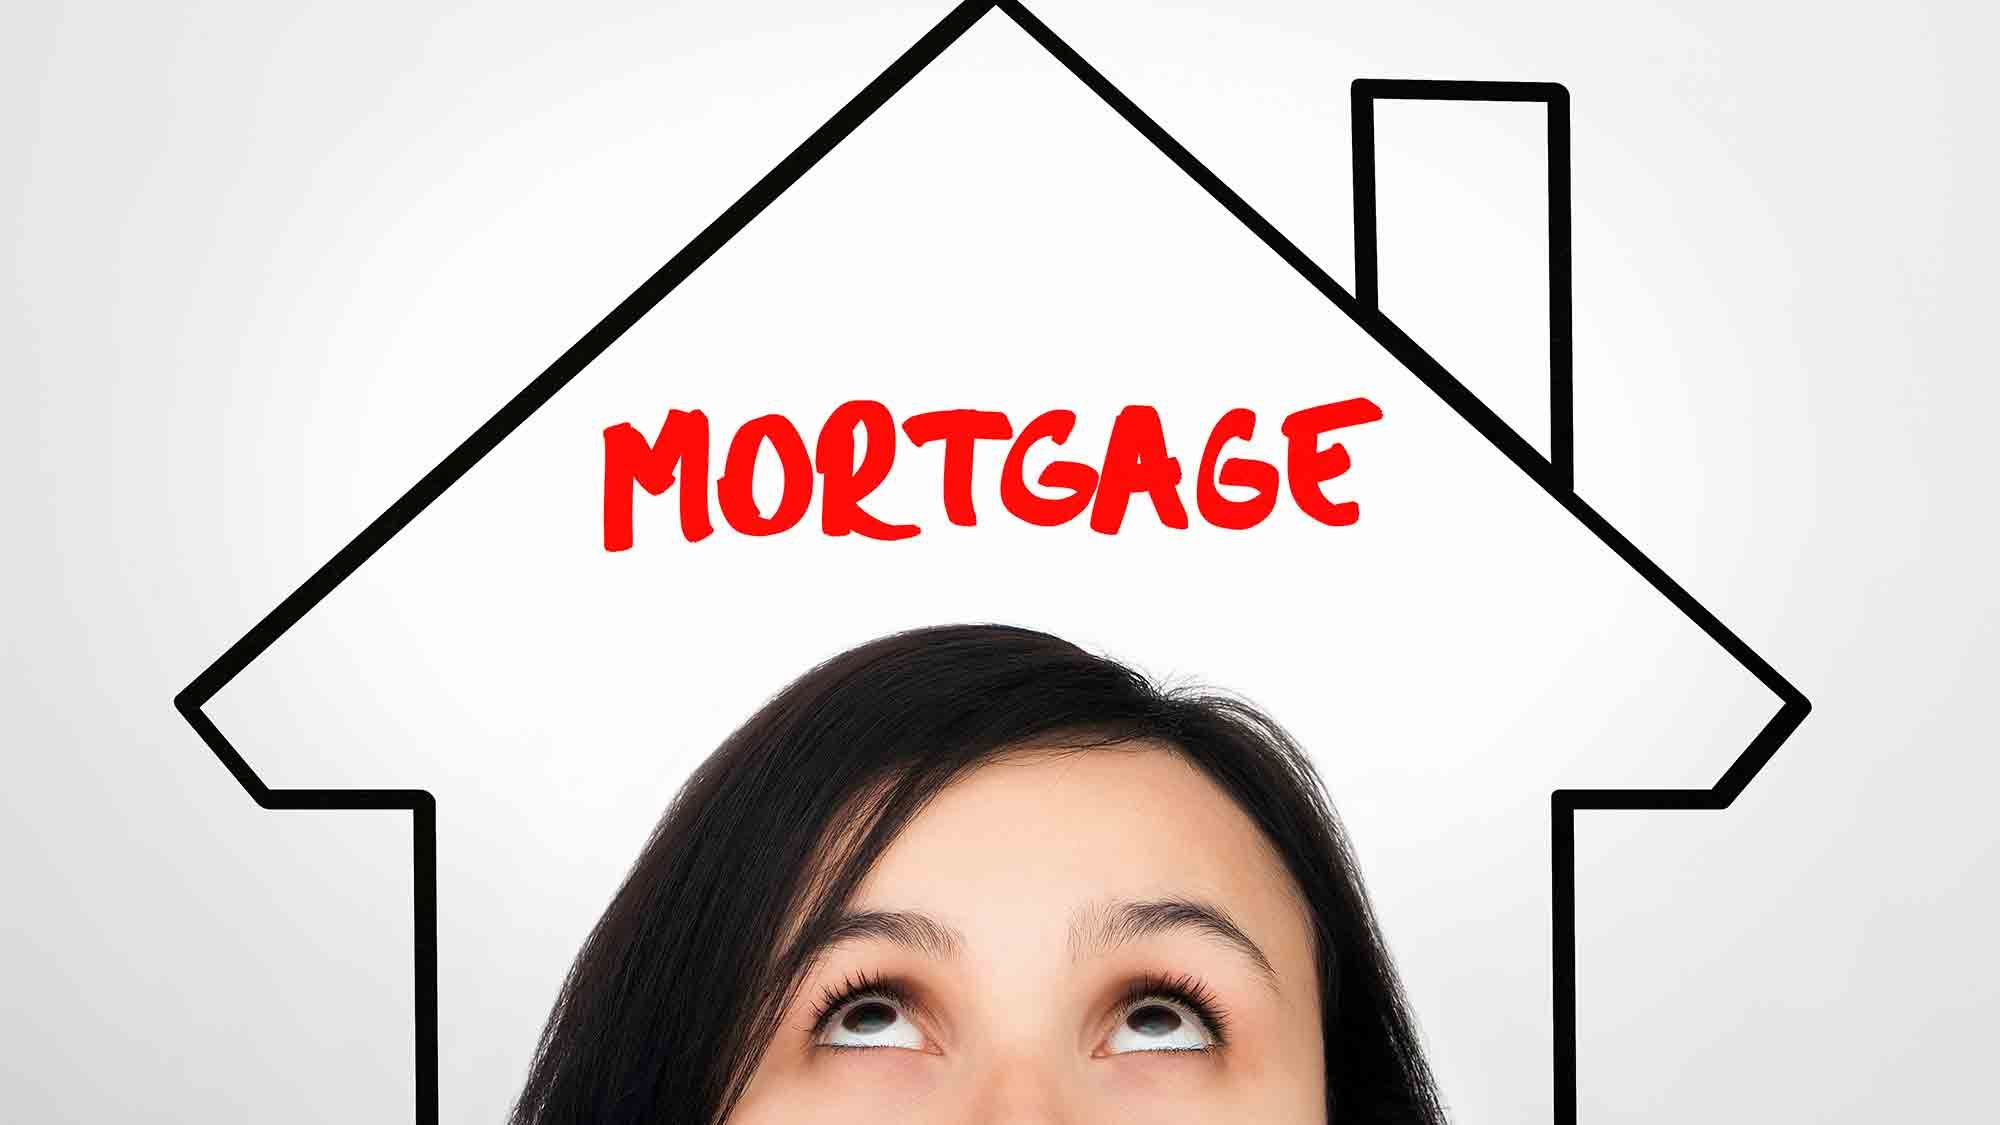 5 Mortgage Questions Home Buyers Always Ask Answered This Or